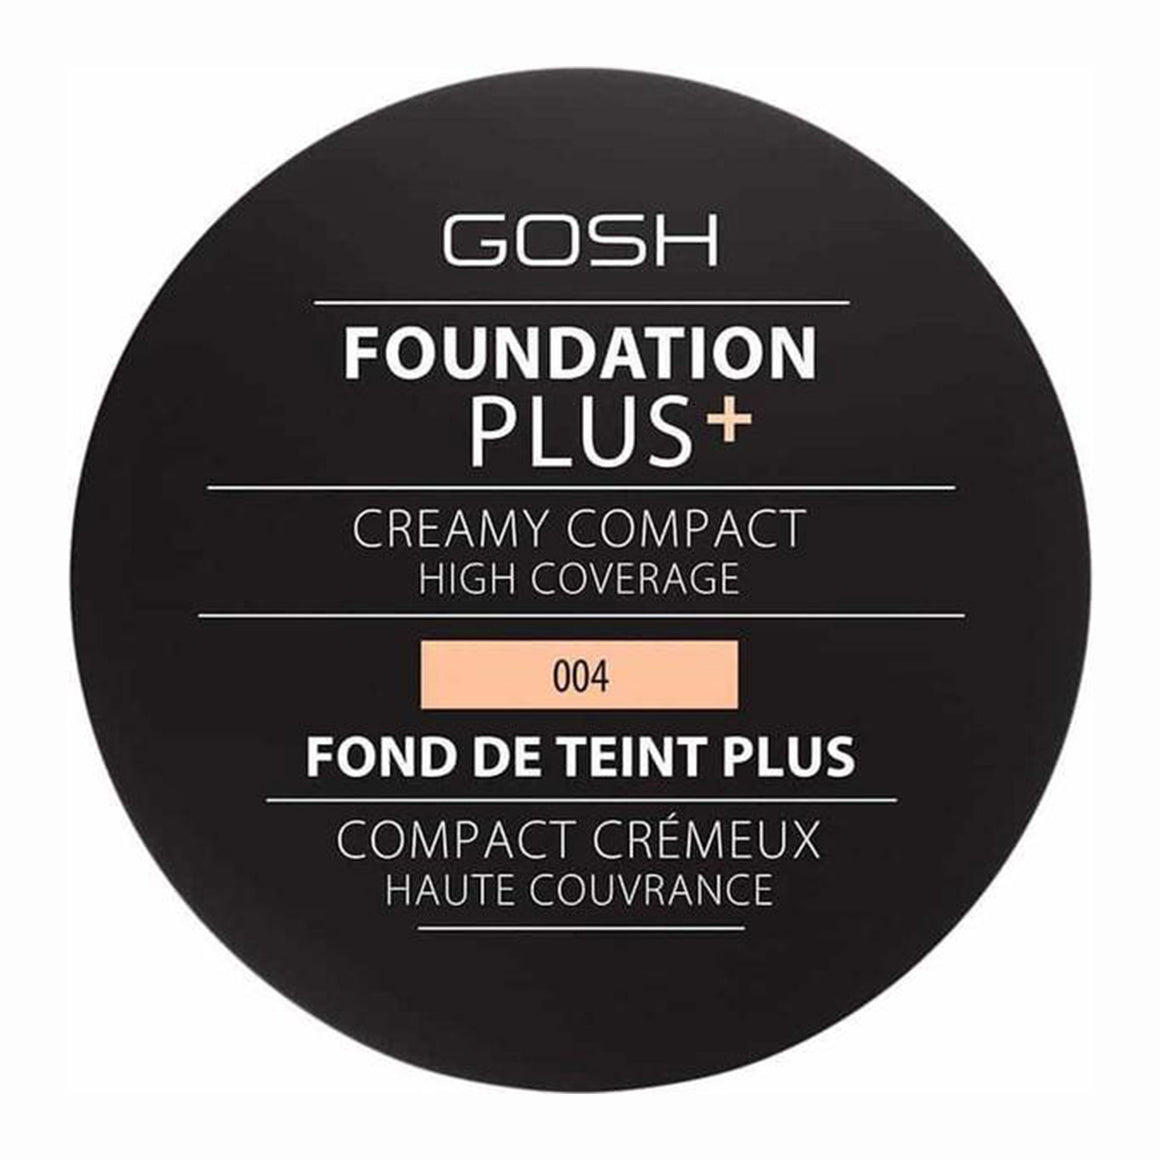 GOSH Foundation Plus Creamy Compact -004 (Natural)